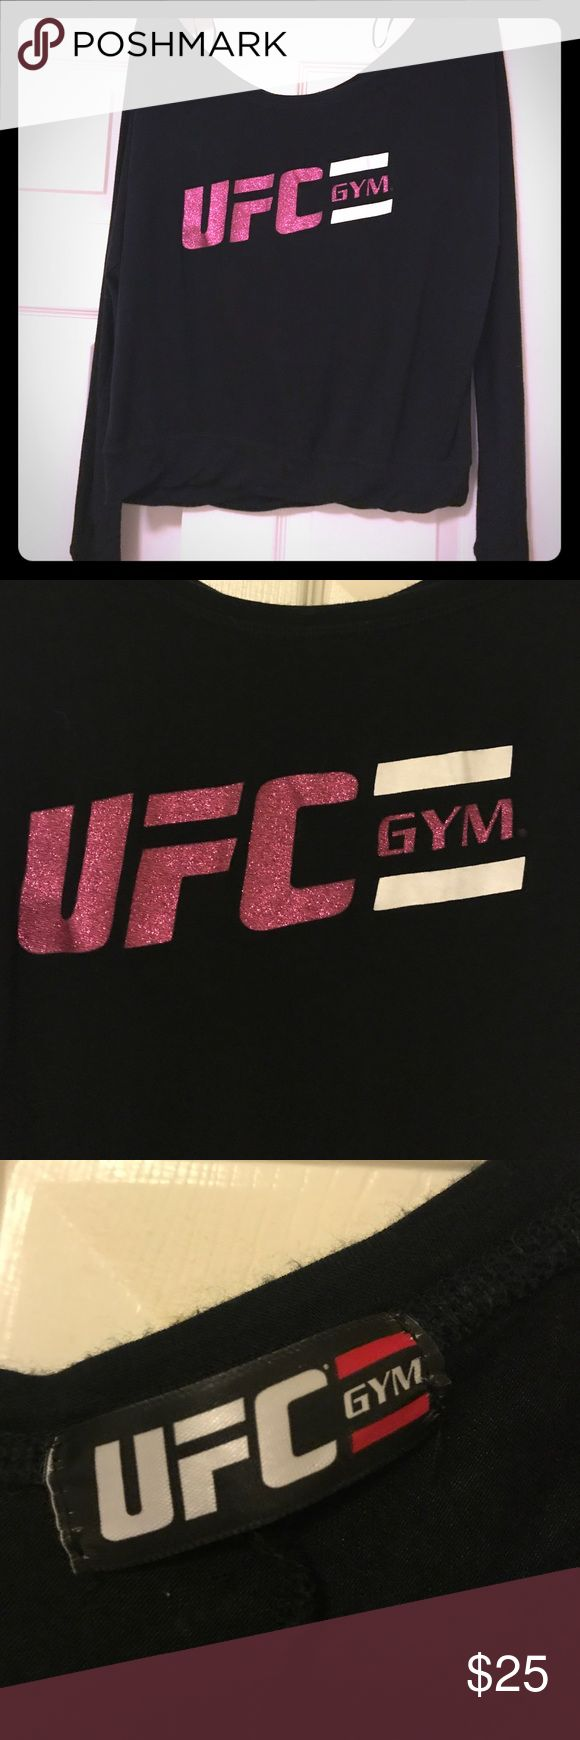 FLASH SALE❄️UFC GYM Top👊🏻 No fading✔️Glitter UFC logo ✔️Soft and has stretch~rayon and spandex blend✔️Scoop Neck✔️approx measurements laid flat:length 23 in,sleeve 27 in✔️Bundle for better deals⚫️ Tops Tees - Long Sleeve